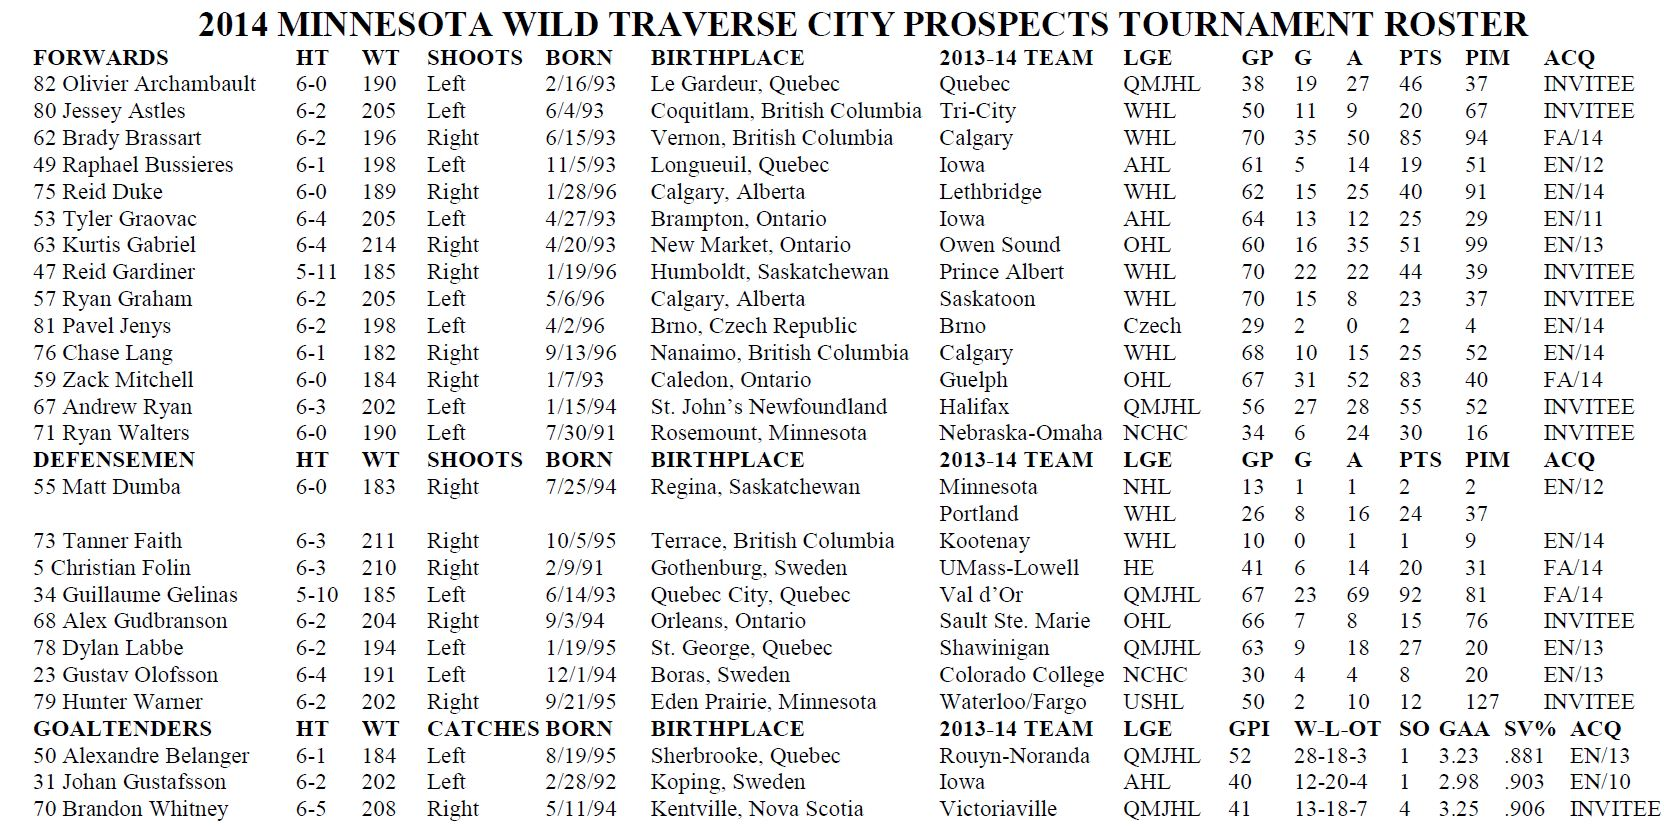 Traverse City Roster